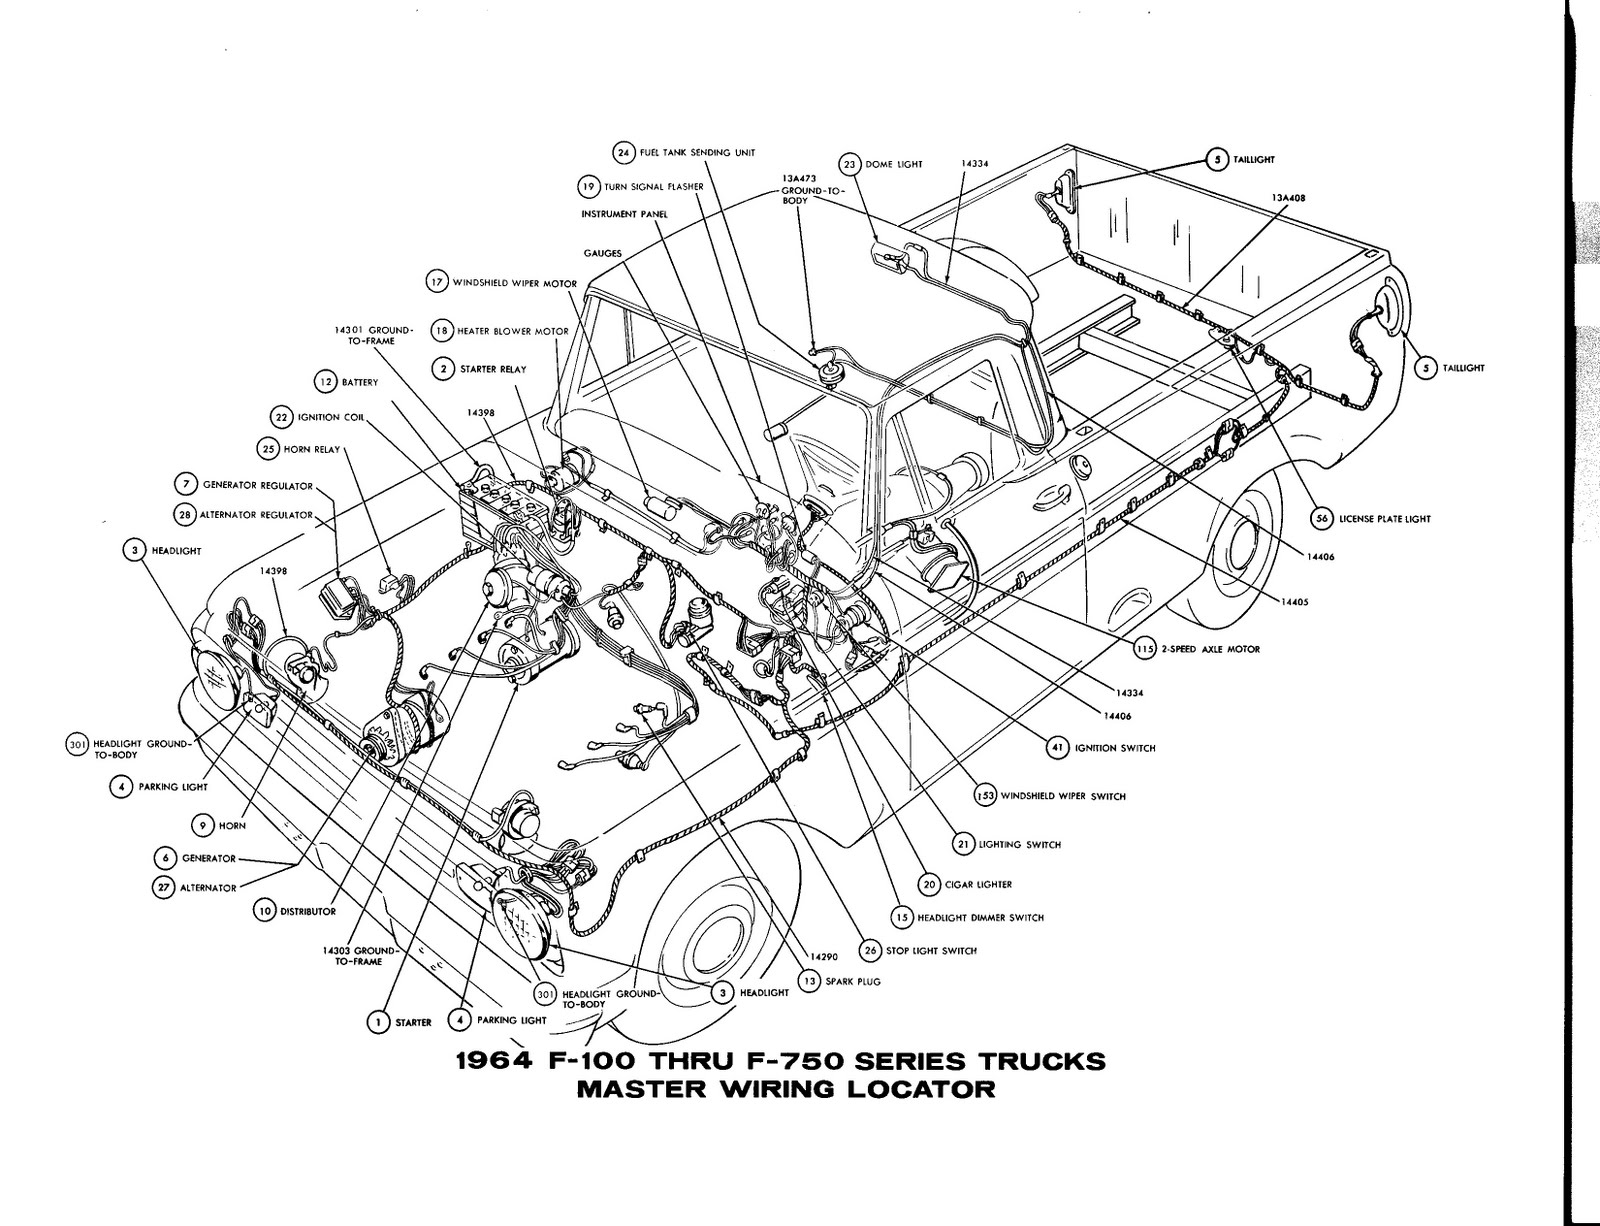 Wiring Diagram Besides 1962 Ford F100 On 1954 Blinker Switch Wire 1964 Truck Basic Guide U2022 Rh Needpixies Com